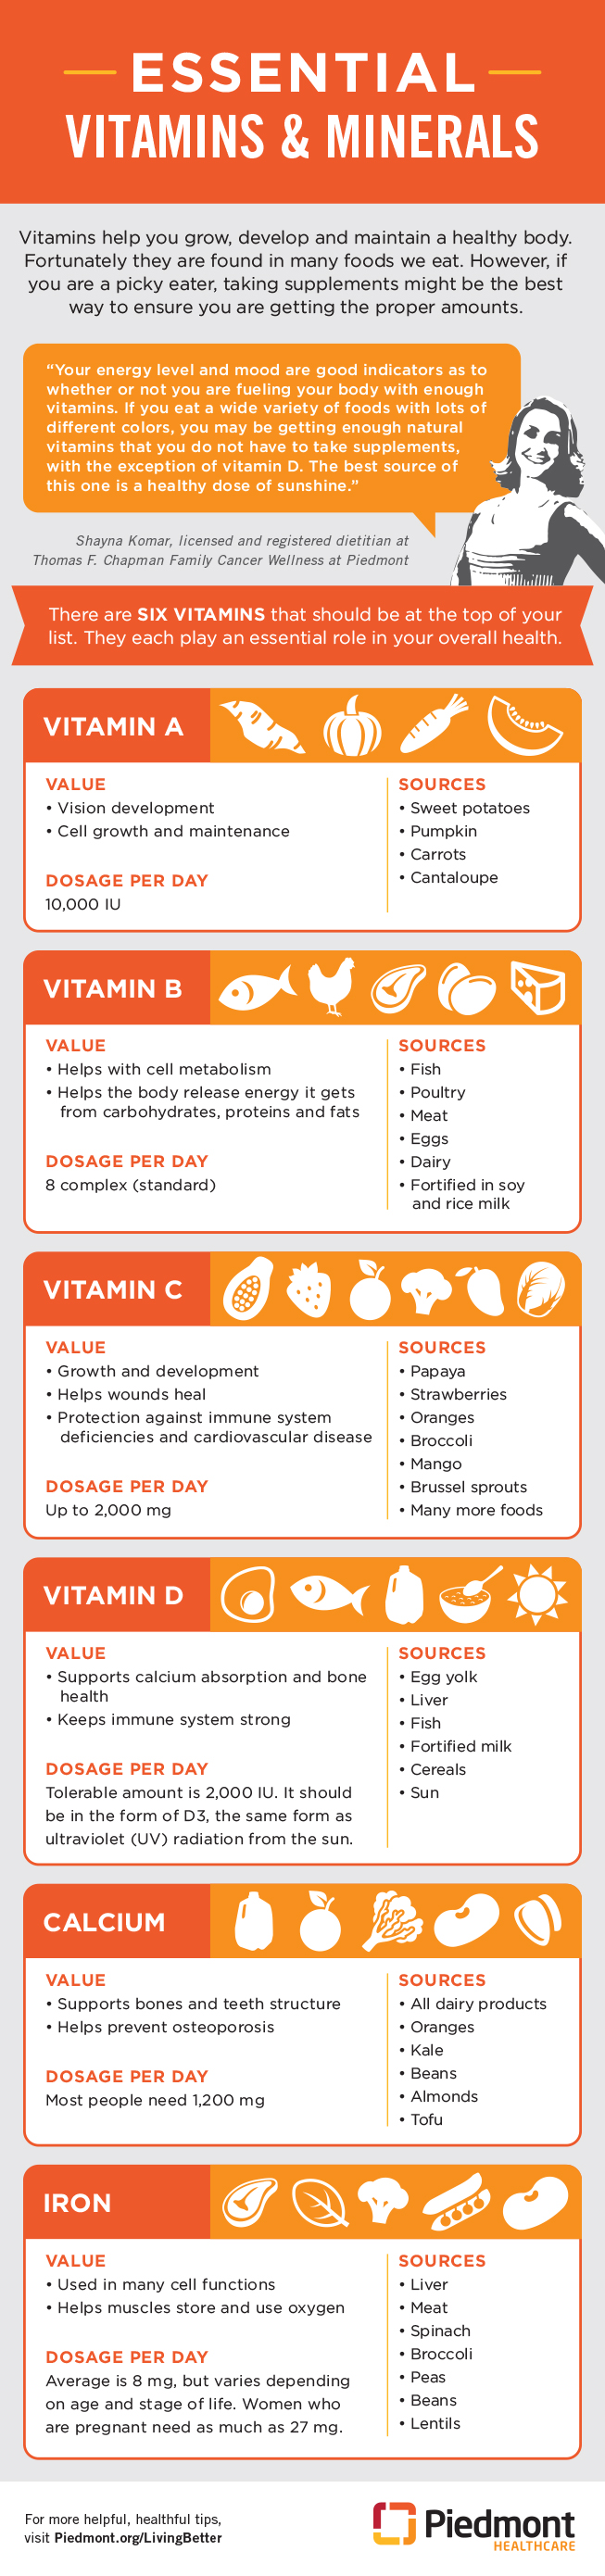 Essential vitamins and minerals graphic.